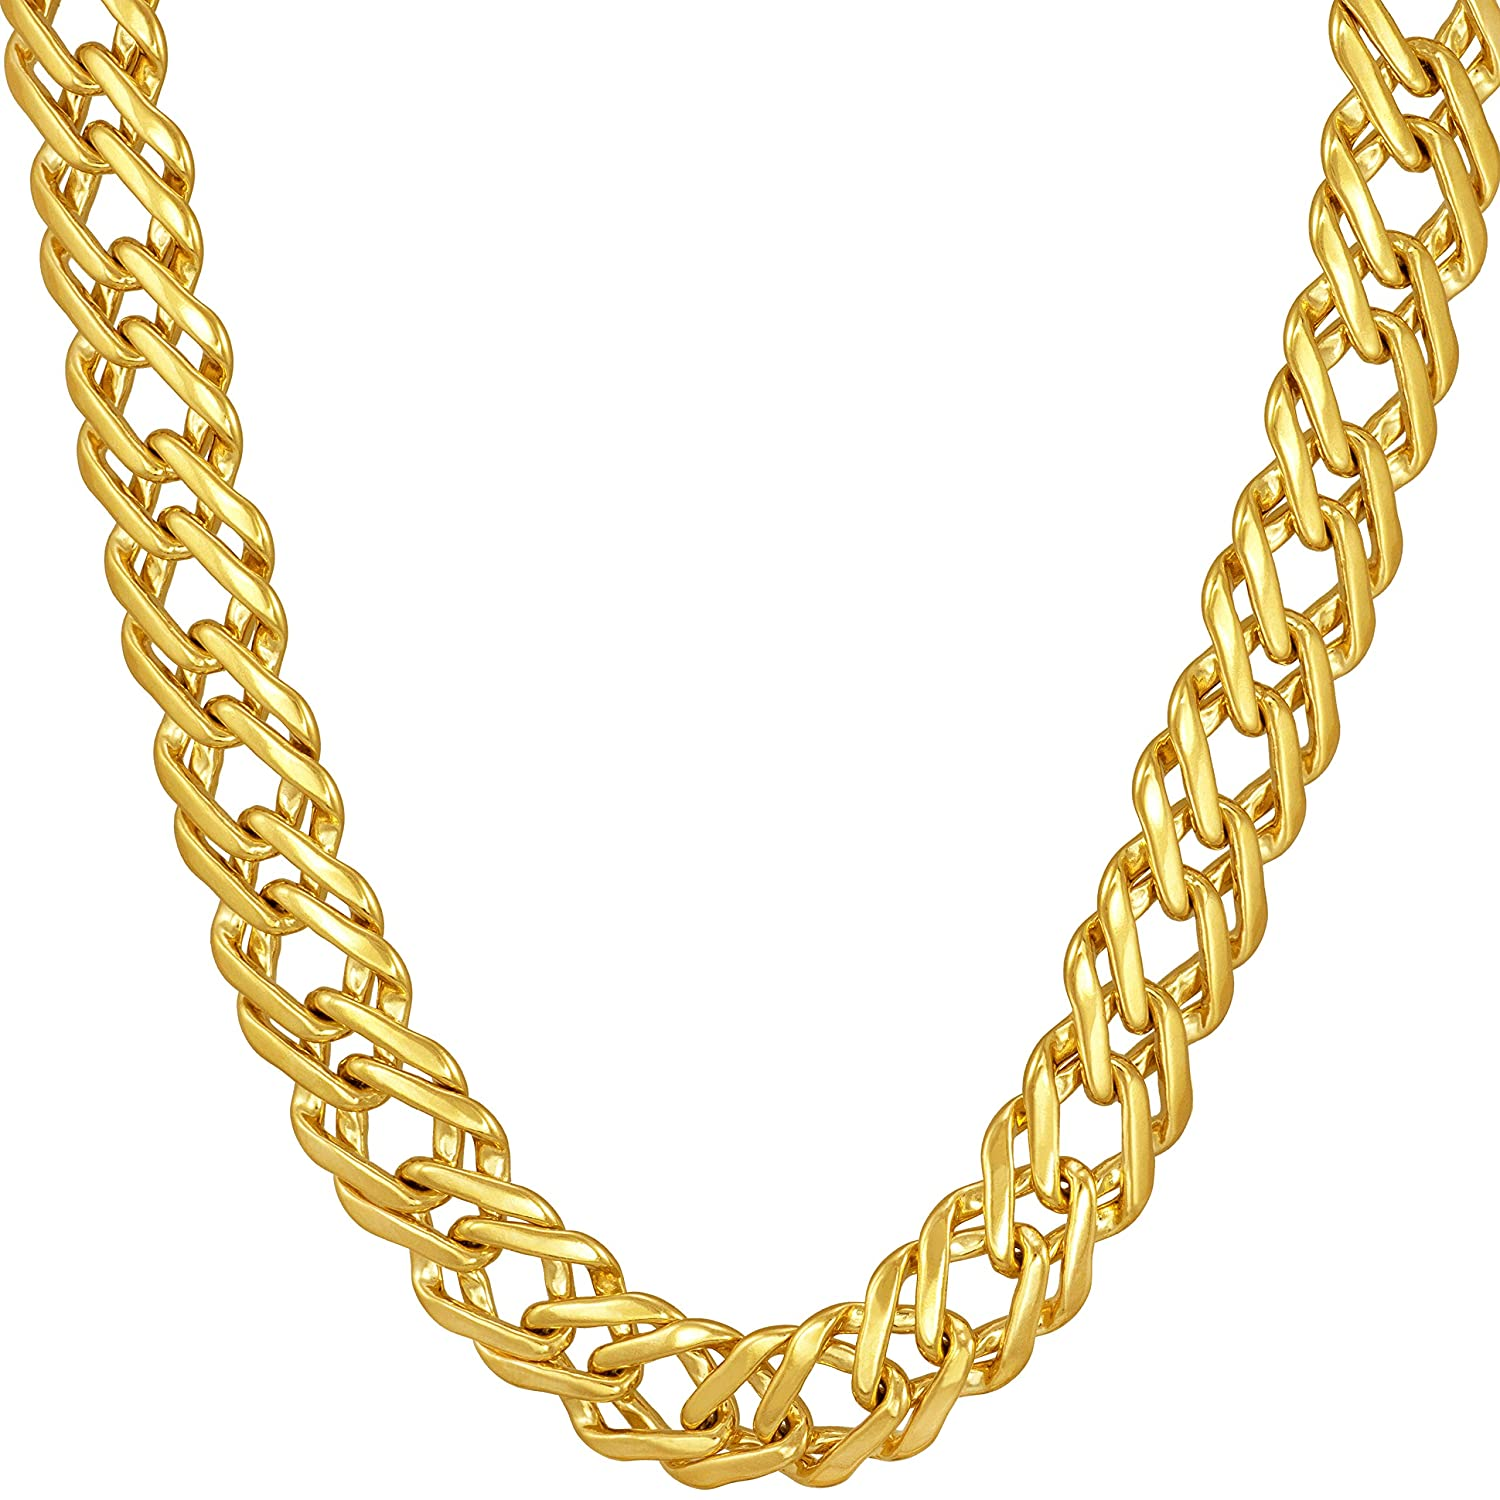 Lifetime Replacement Guarantee 16-30 Lifetime Jewelry Statement Necklace for Women /& Teen Girls Thick and Durable 7.7mm Venetian Gold Chain 20X More Real 24k Plating Than Other Necklaces